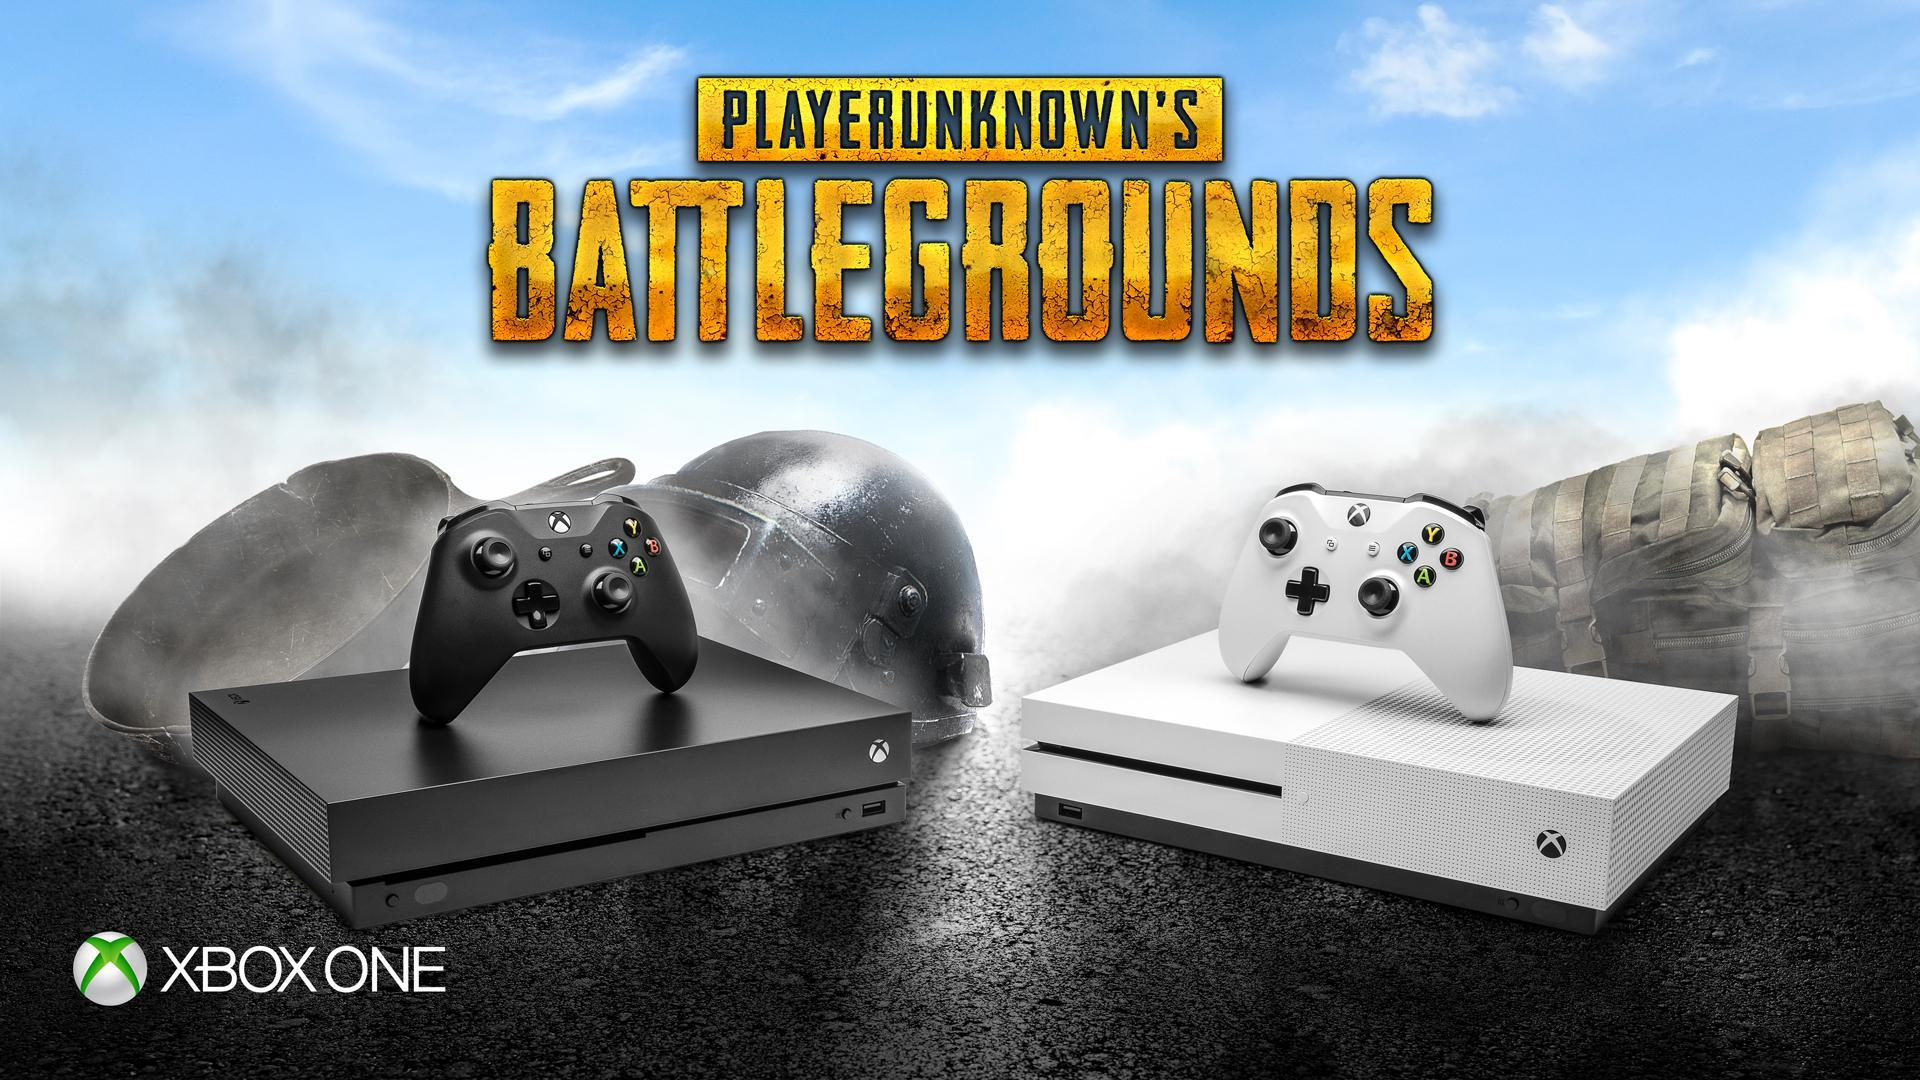 c3c33b62a21dd8d2a77d33dceb8c38ad When is PlayerUnknown's Battlegrounds' Xbox One release date and is it on Steam and PS4?